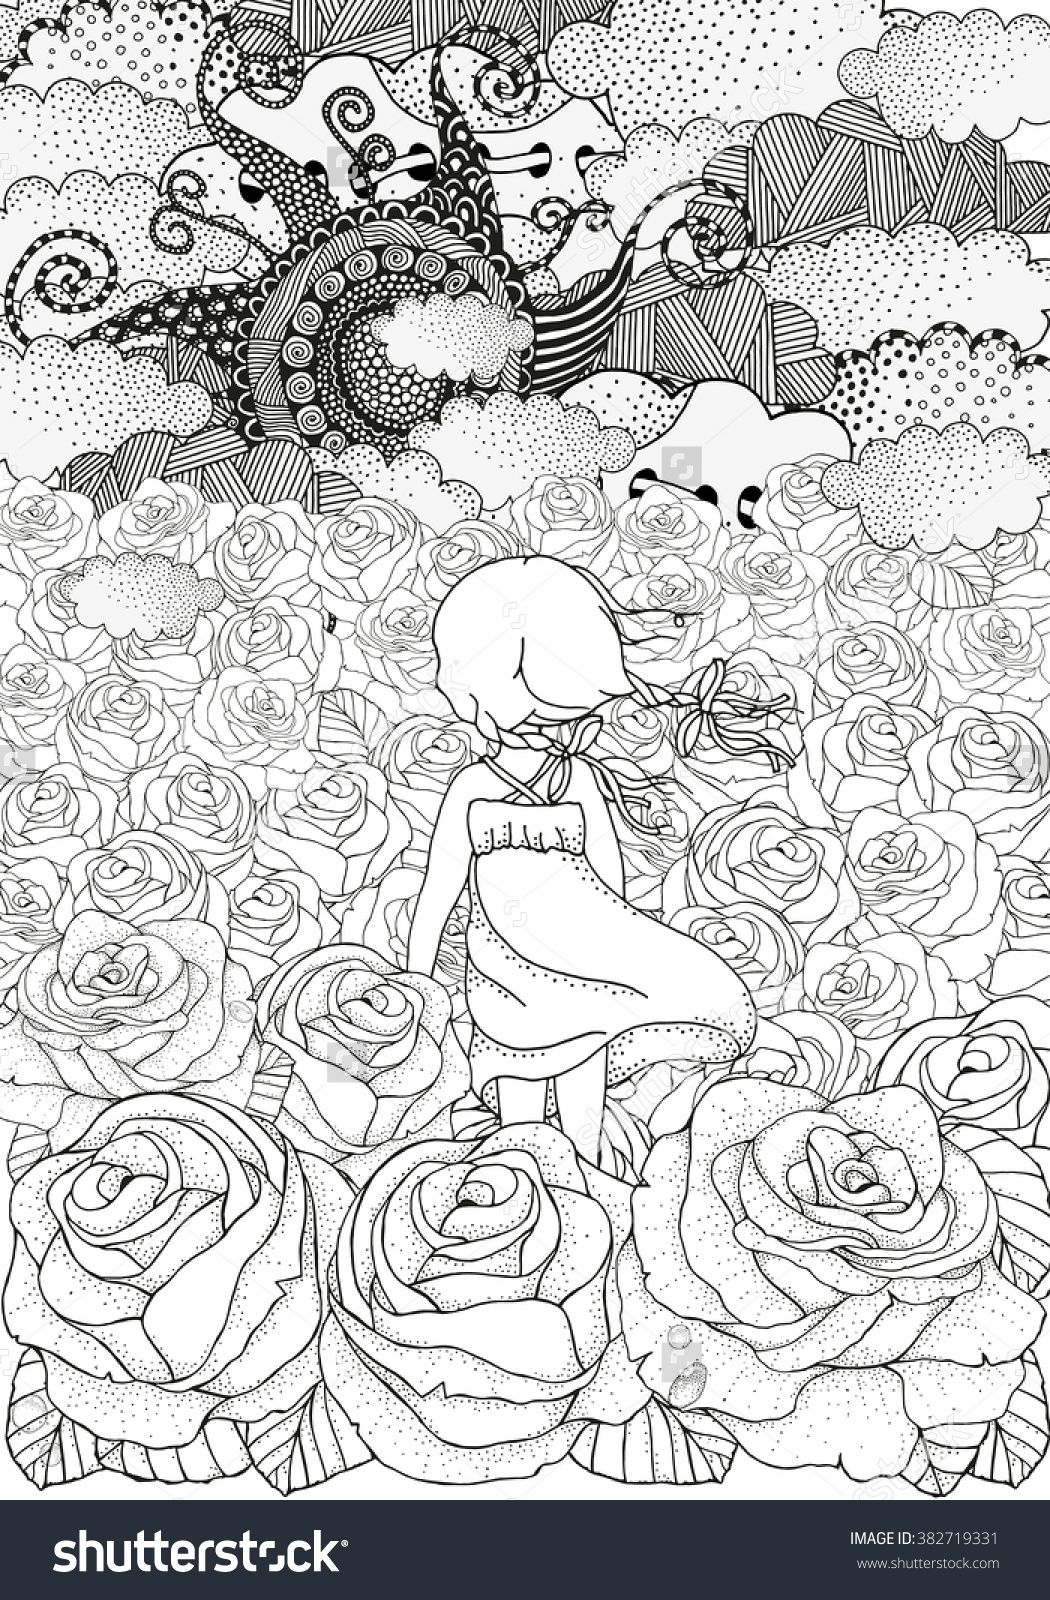 Little Girl Alone Many Roses Black And White Abstract Fantasy